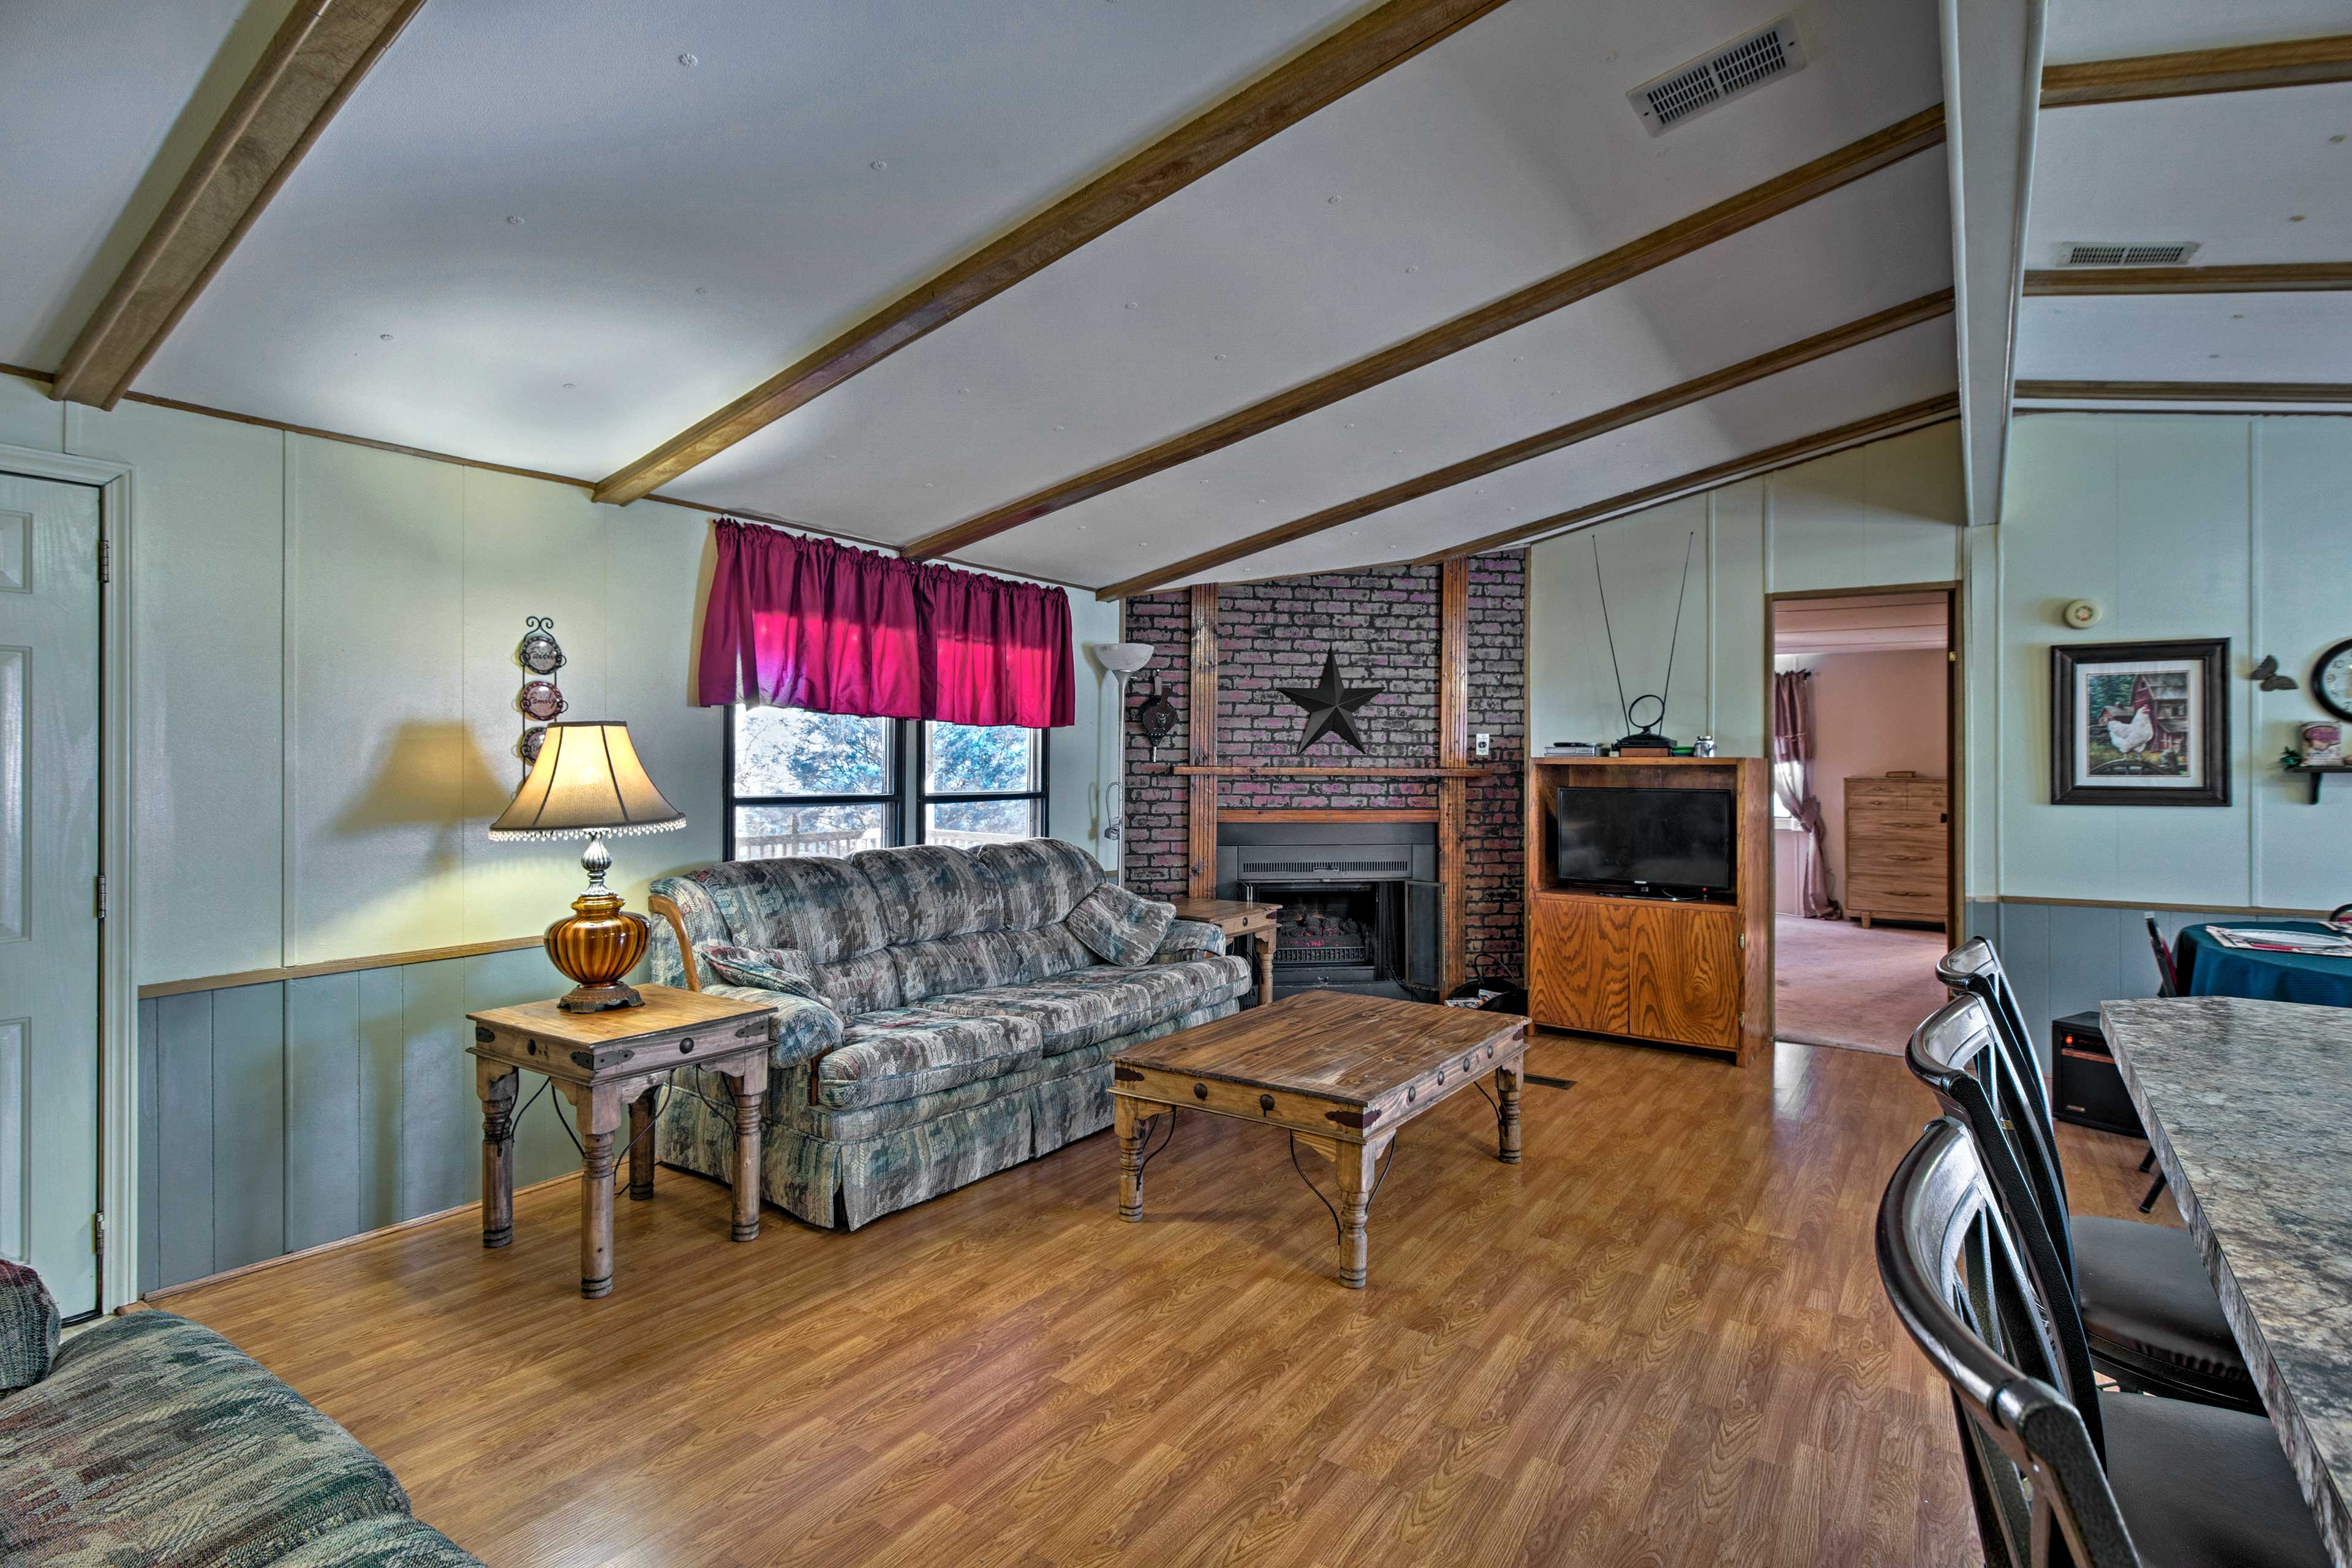 Inside, the home is well-appointed with comfortable furnishings.